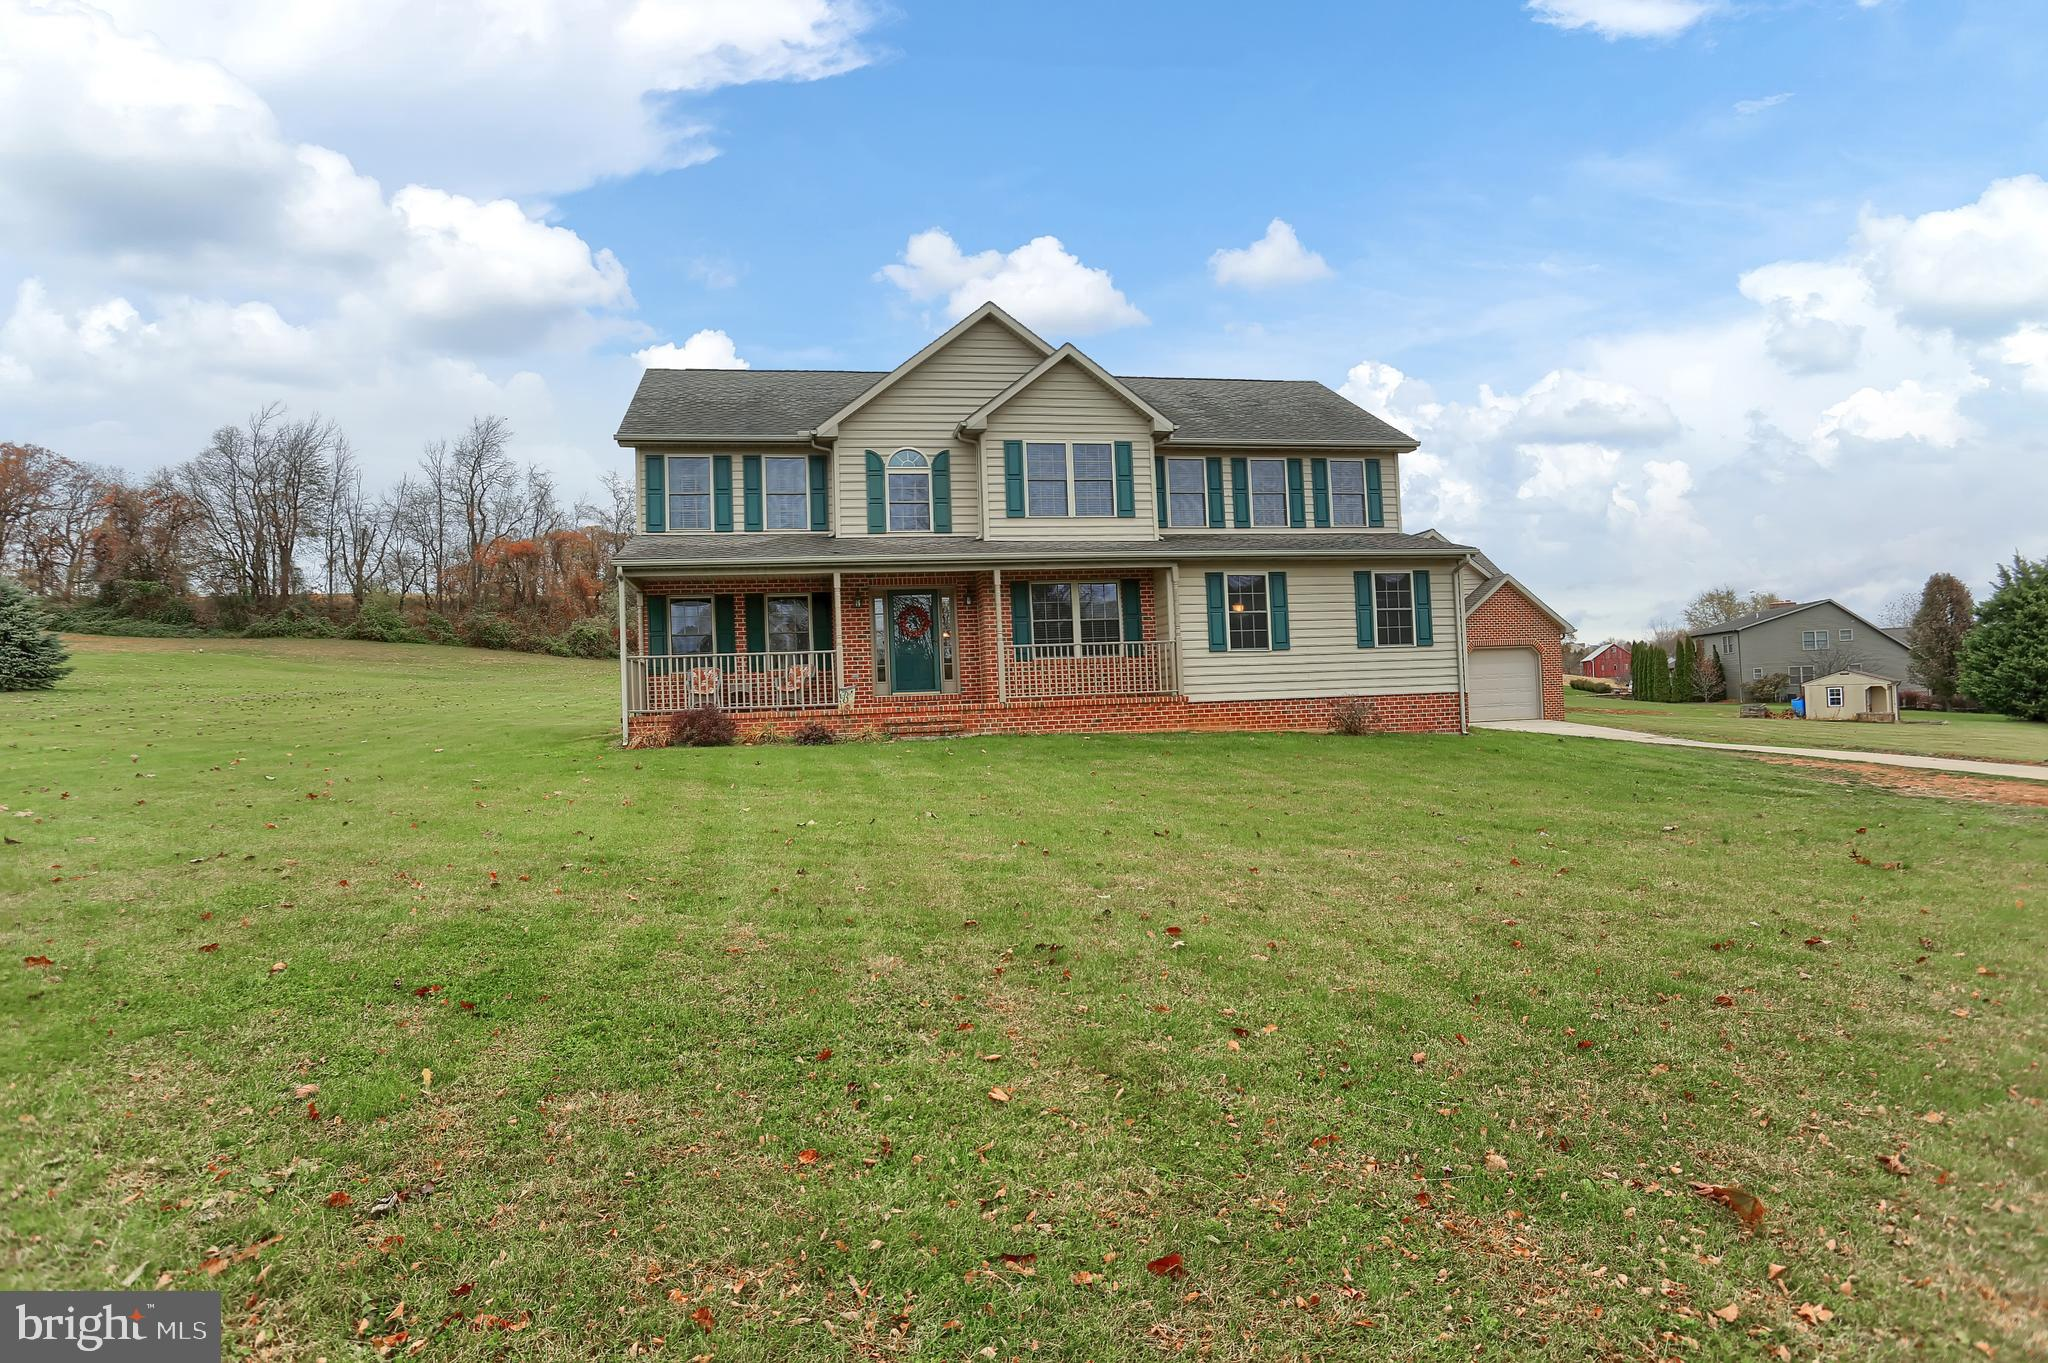 4344 DRY BRIDGE ROAD, GLENVILLE, PA 17329